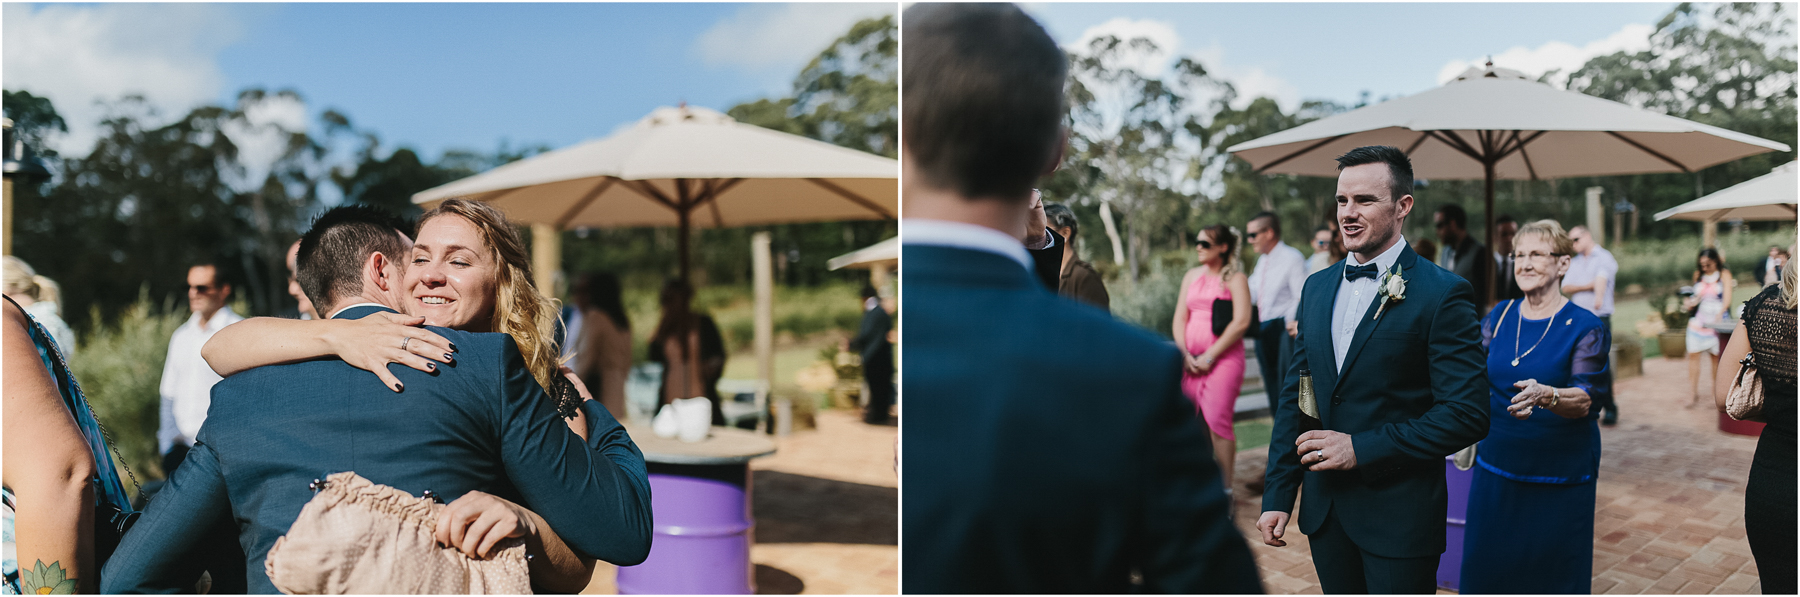 Courtney-Josh-Growwild-Bowral-southernhighlans-Wedding-54